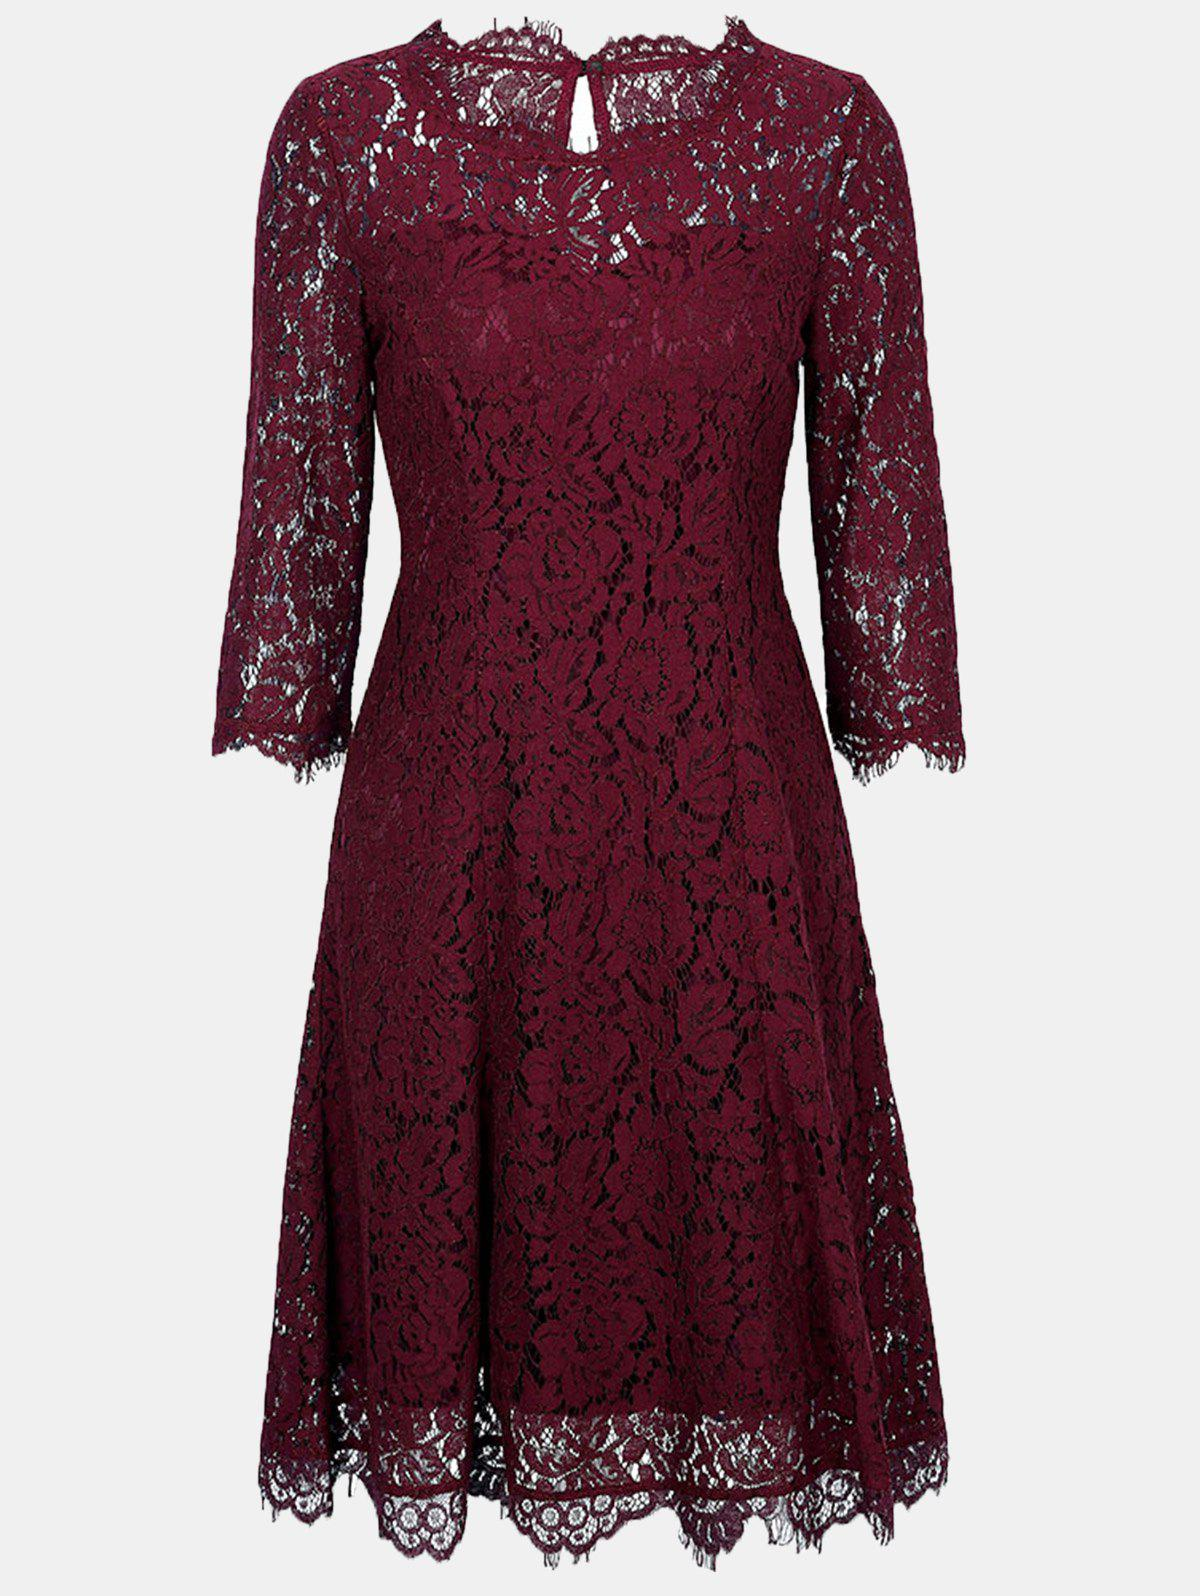 Lace Round Collar 3/4 sleeves A-line Dress - BURGUNDY M